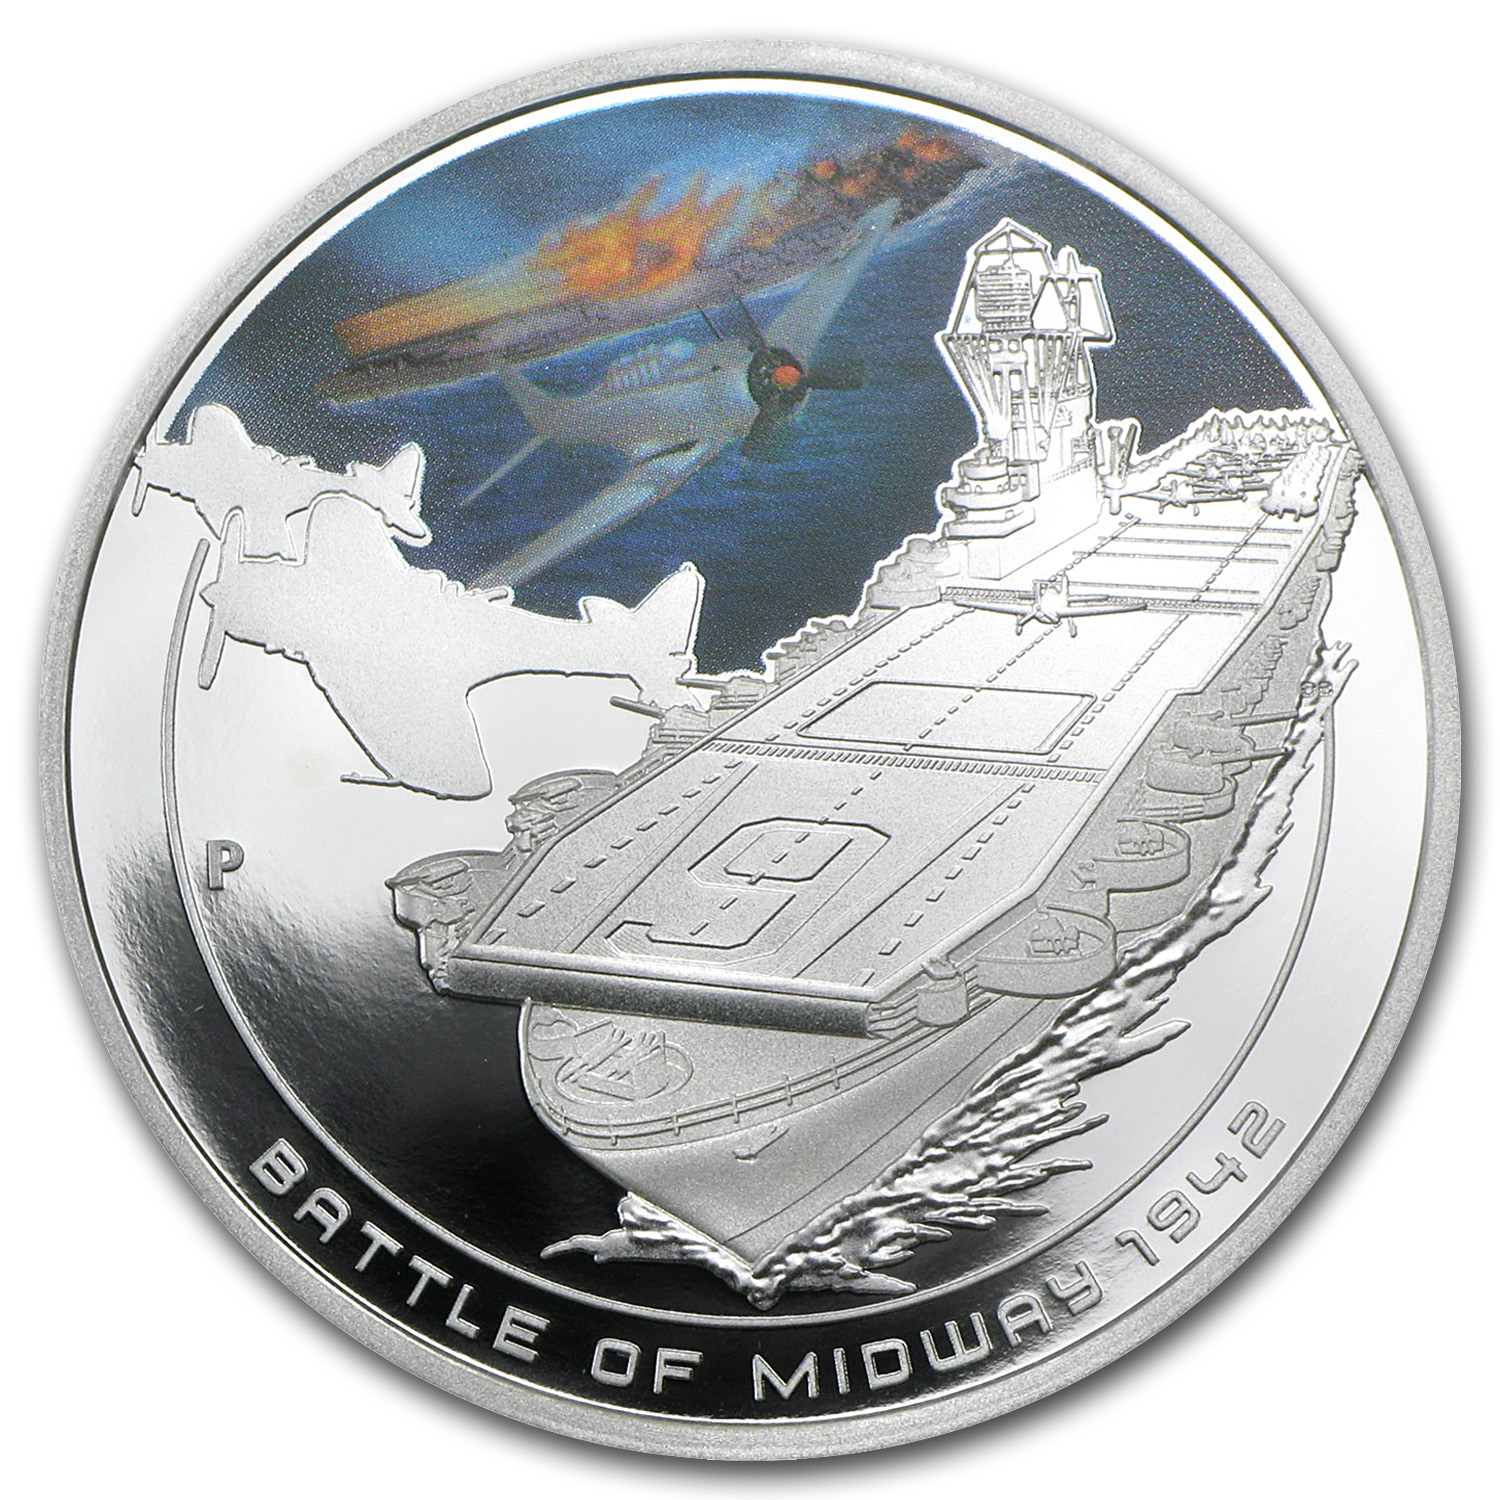 2011 1 oz Silver Cook Islands Battle of Midway Proof